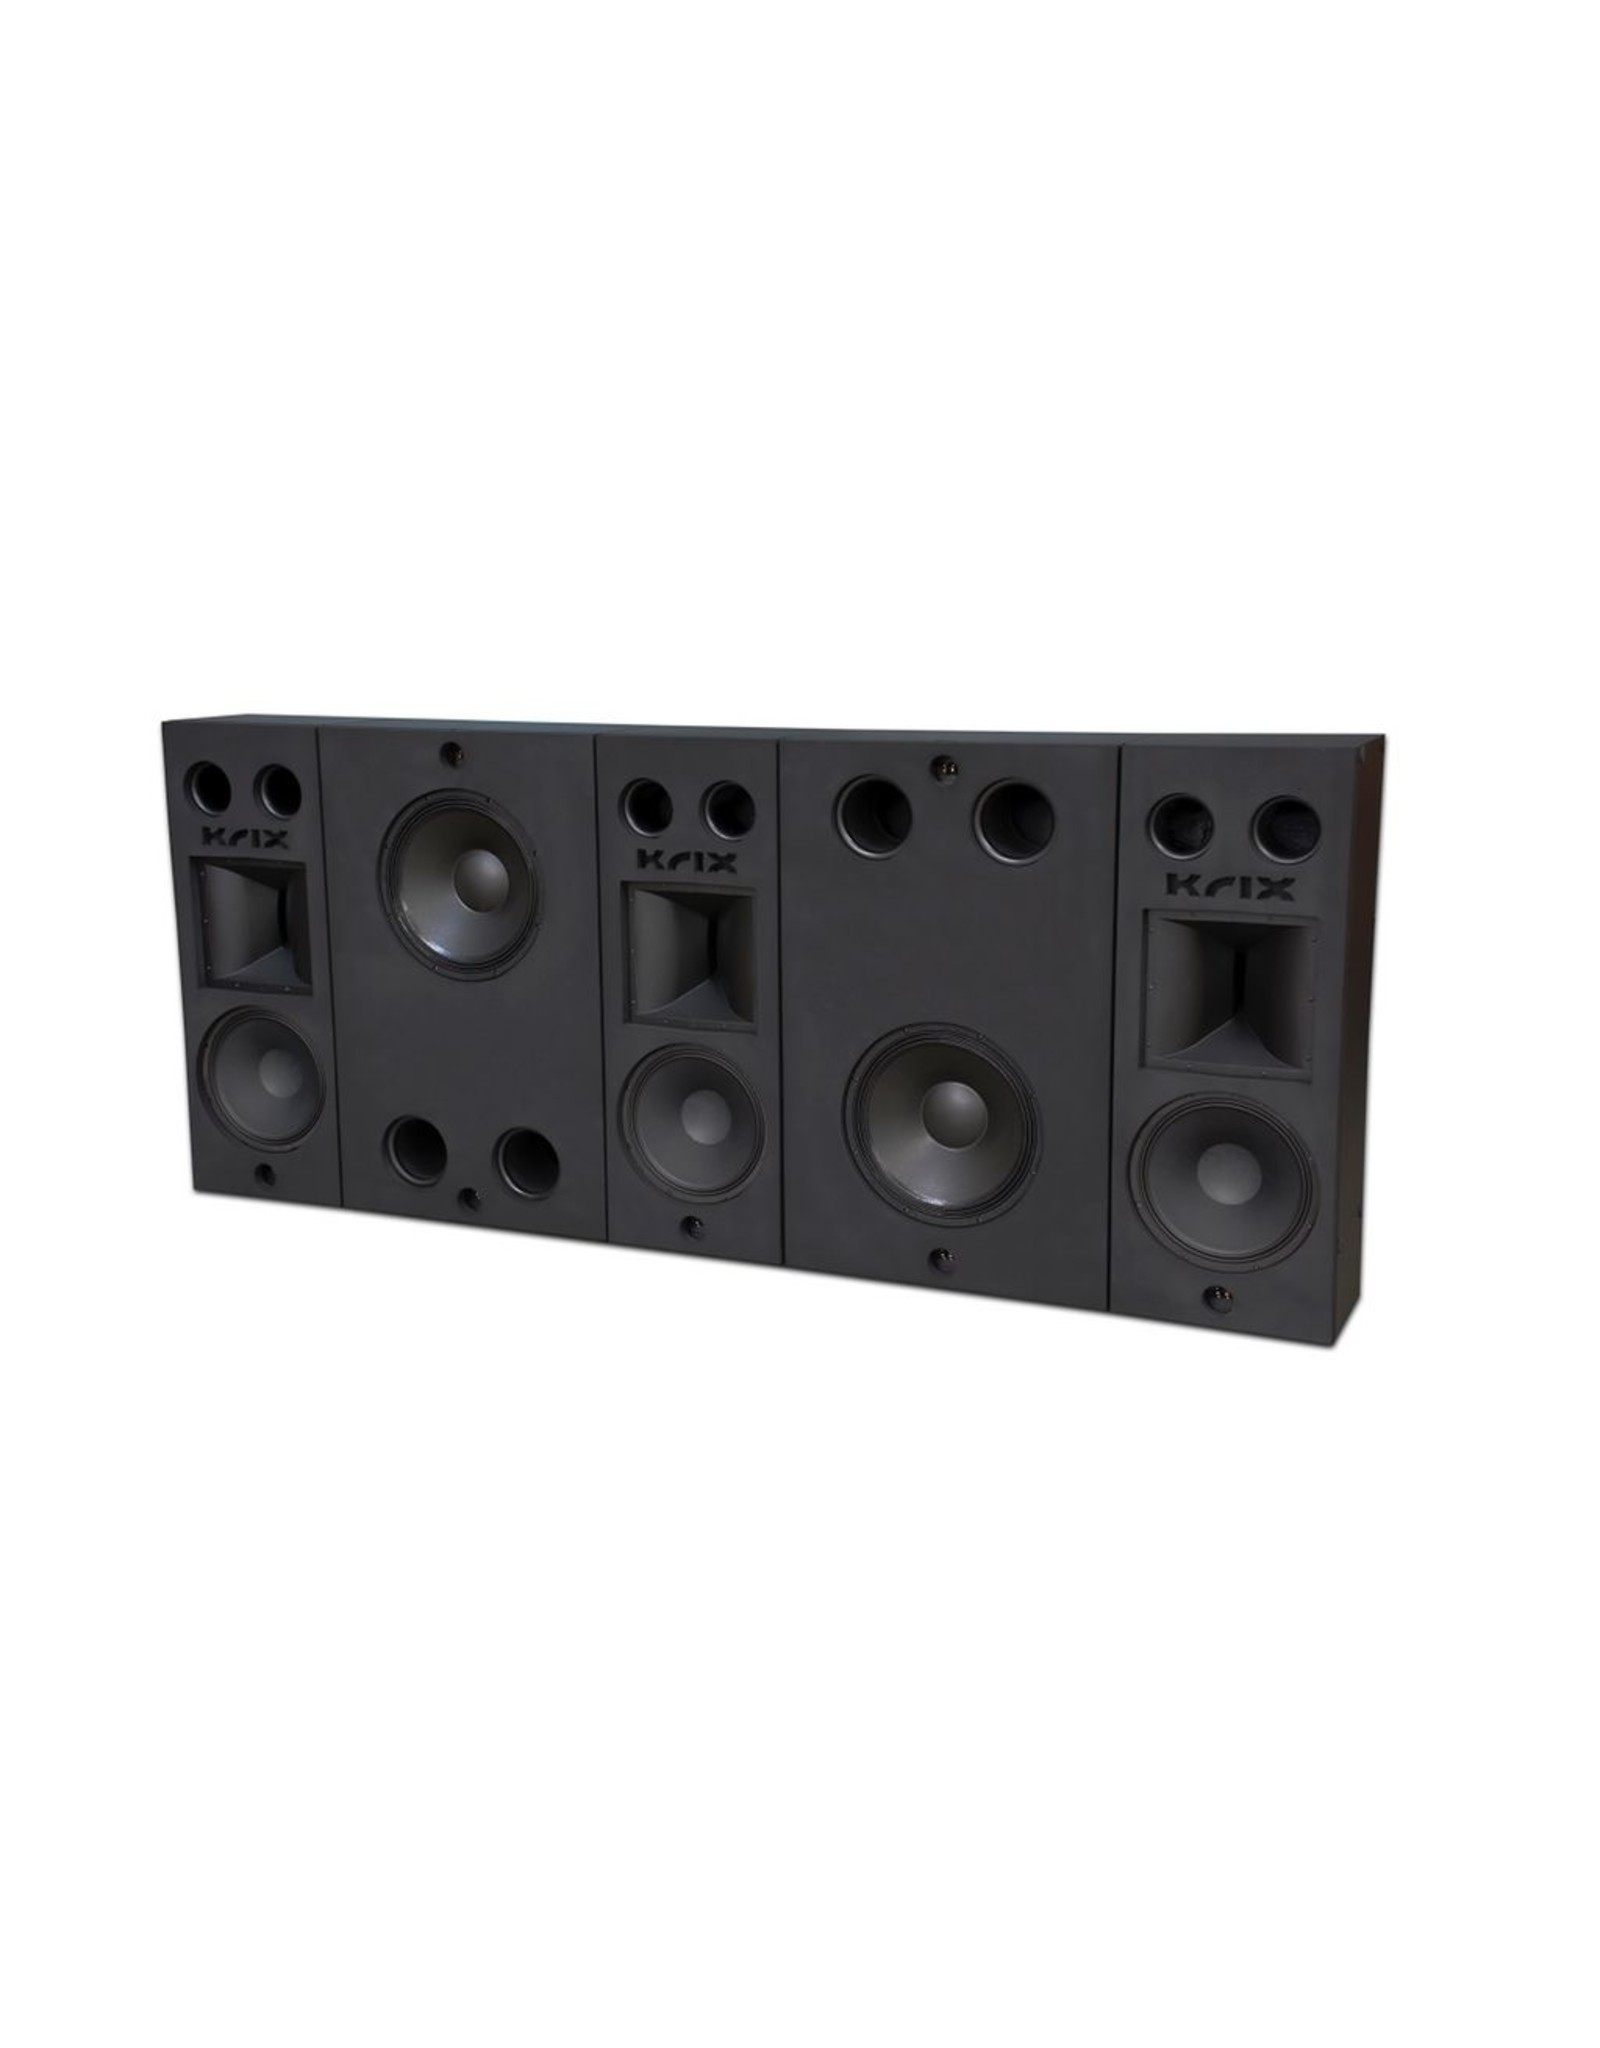 KRIX KRIX - MX-30 MODULAR FULL BEHIND SCREEN SYSTEM Total System Dimensions: 1218mm High (including feet) x 2865mm Wide x 335mm Deep Comprising three main channel modules (left, centre, right), each module including: - High Frequency Krix patented horn wit